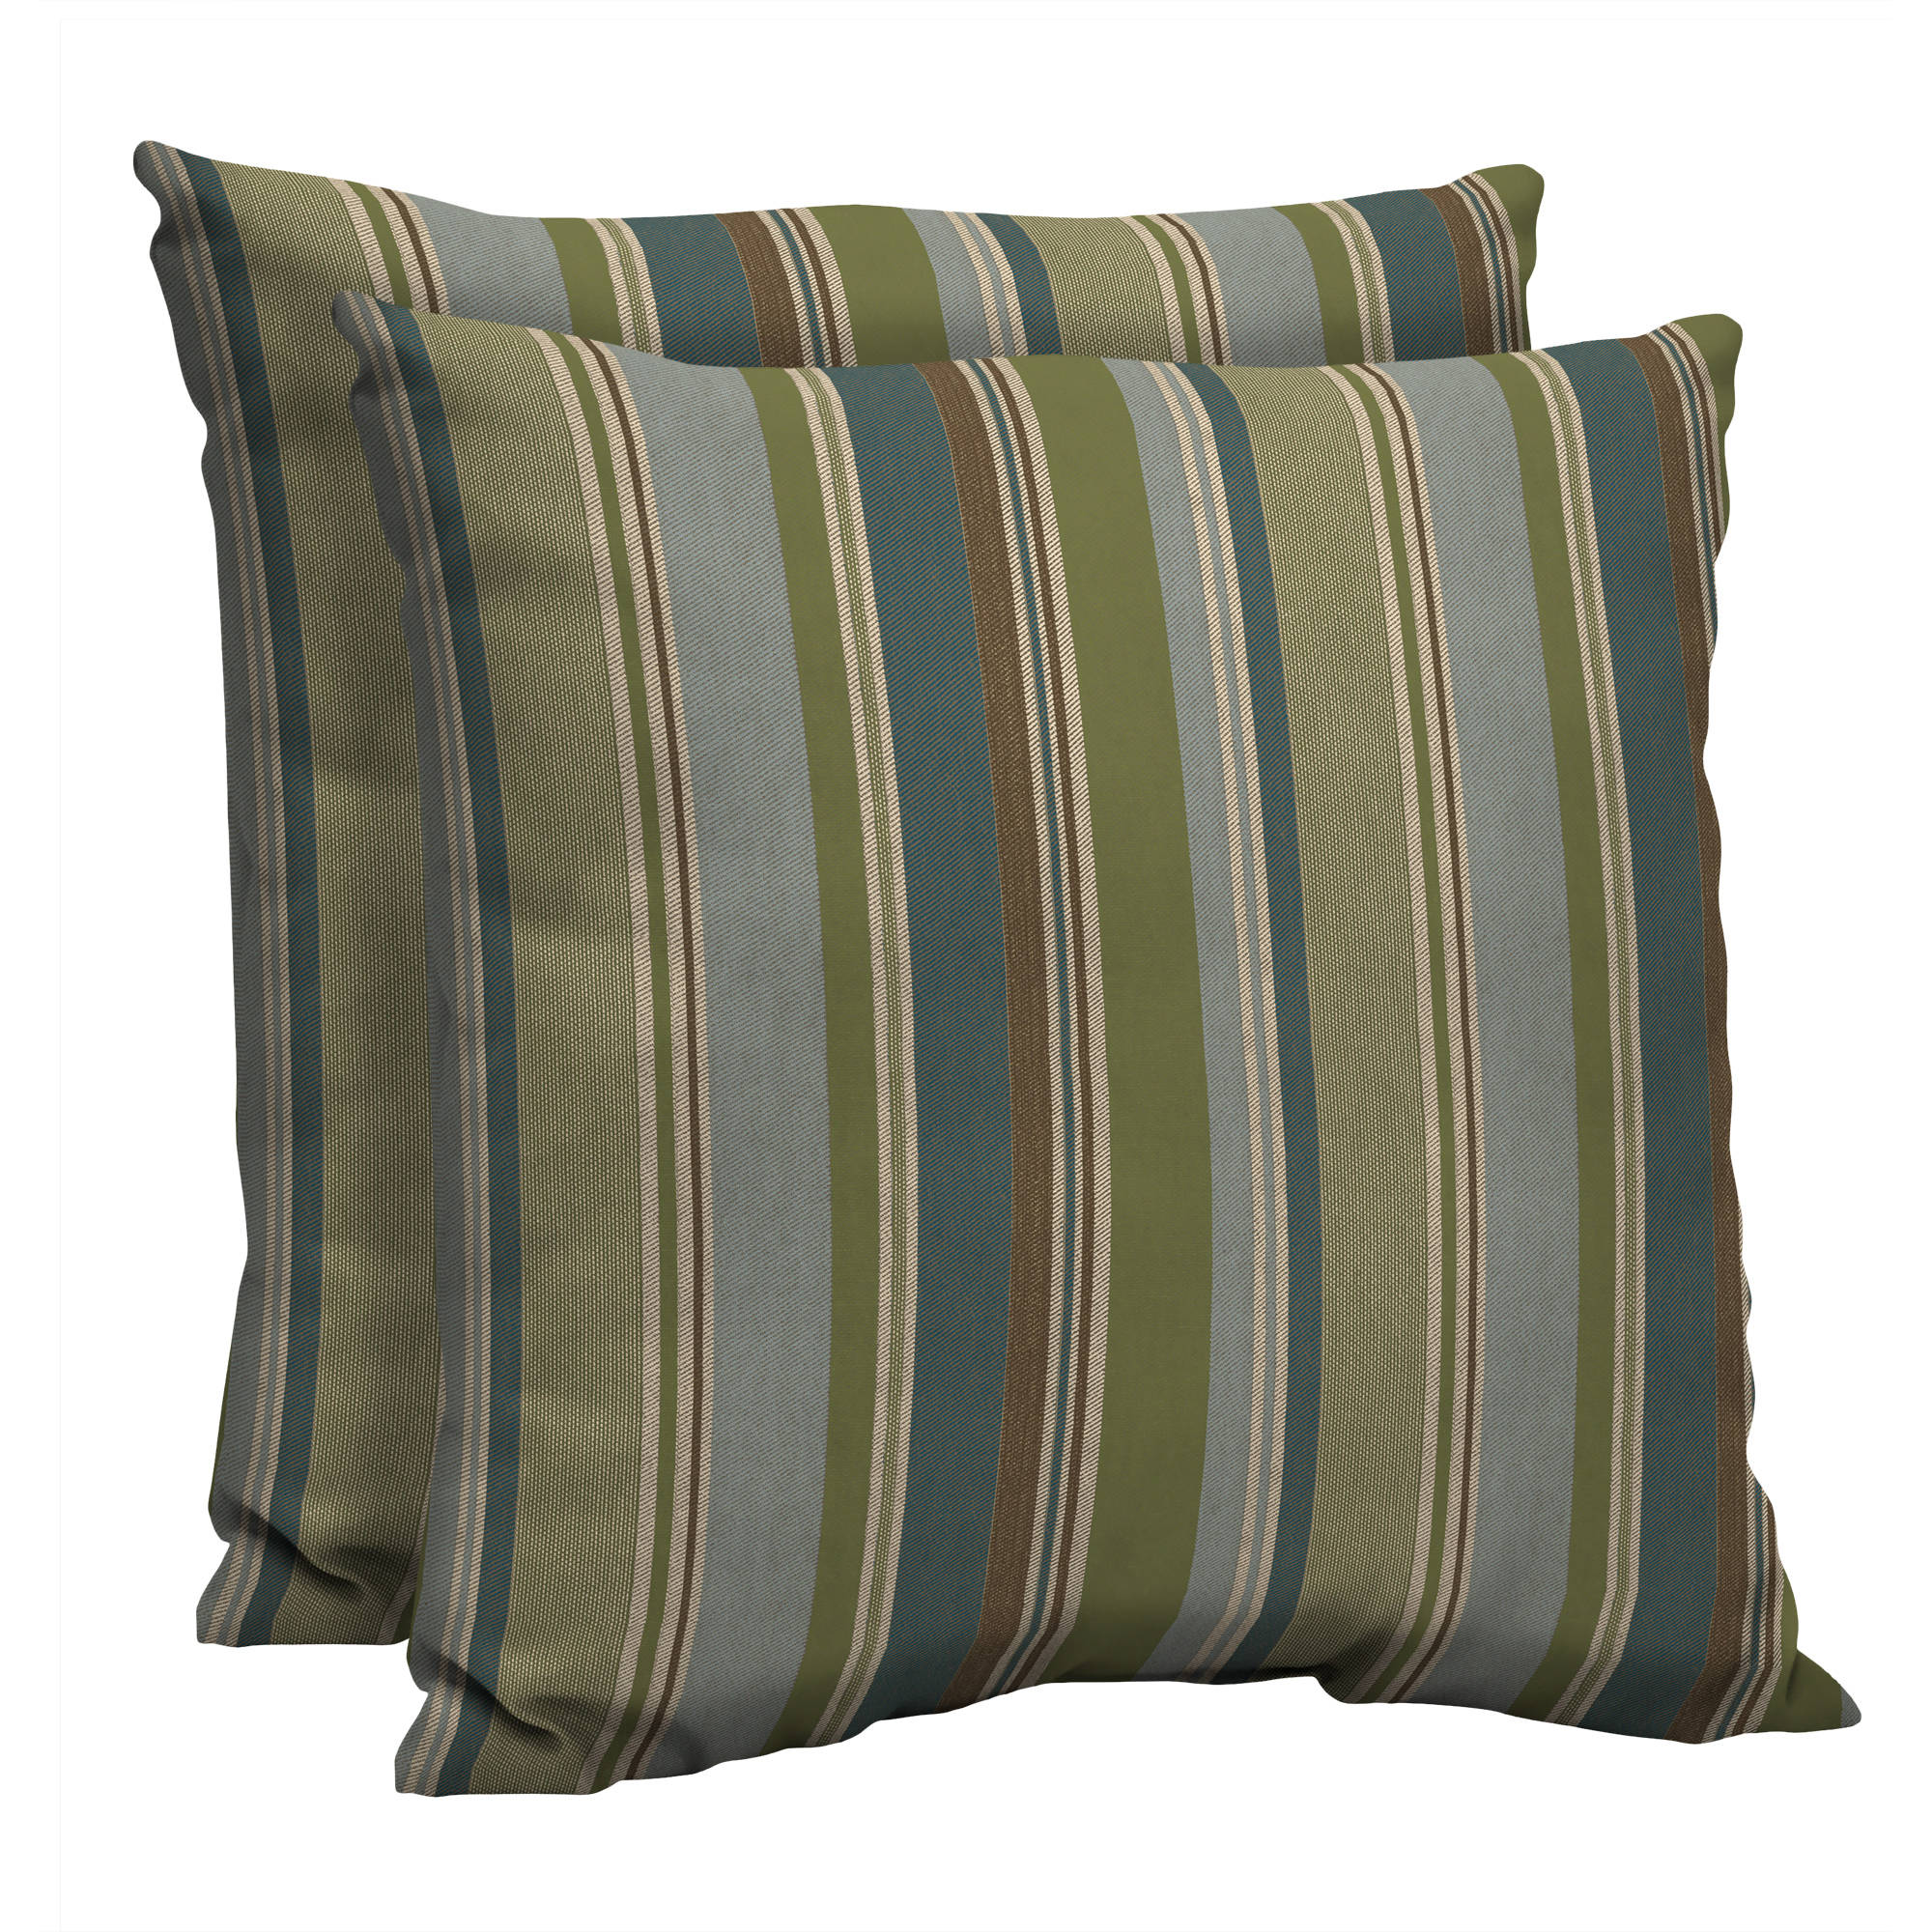 Better Homes and Gardens Outdoor Patio Dining Pillow Back, Set of 2